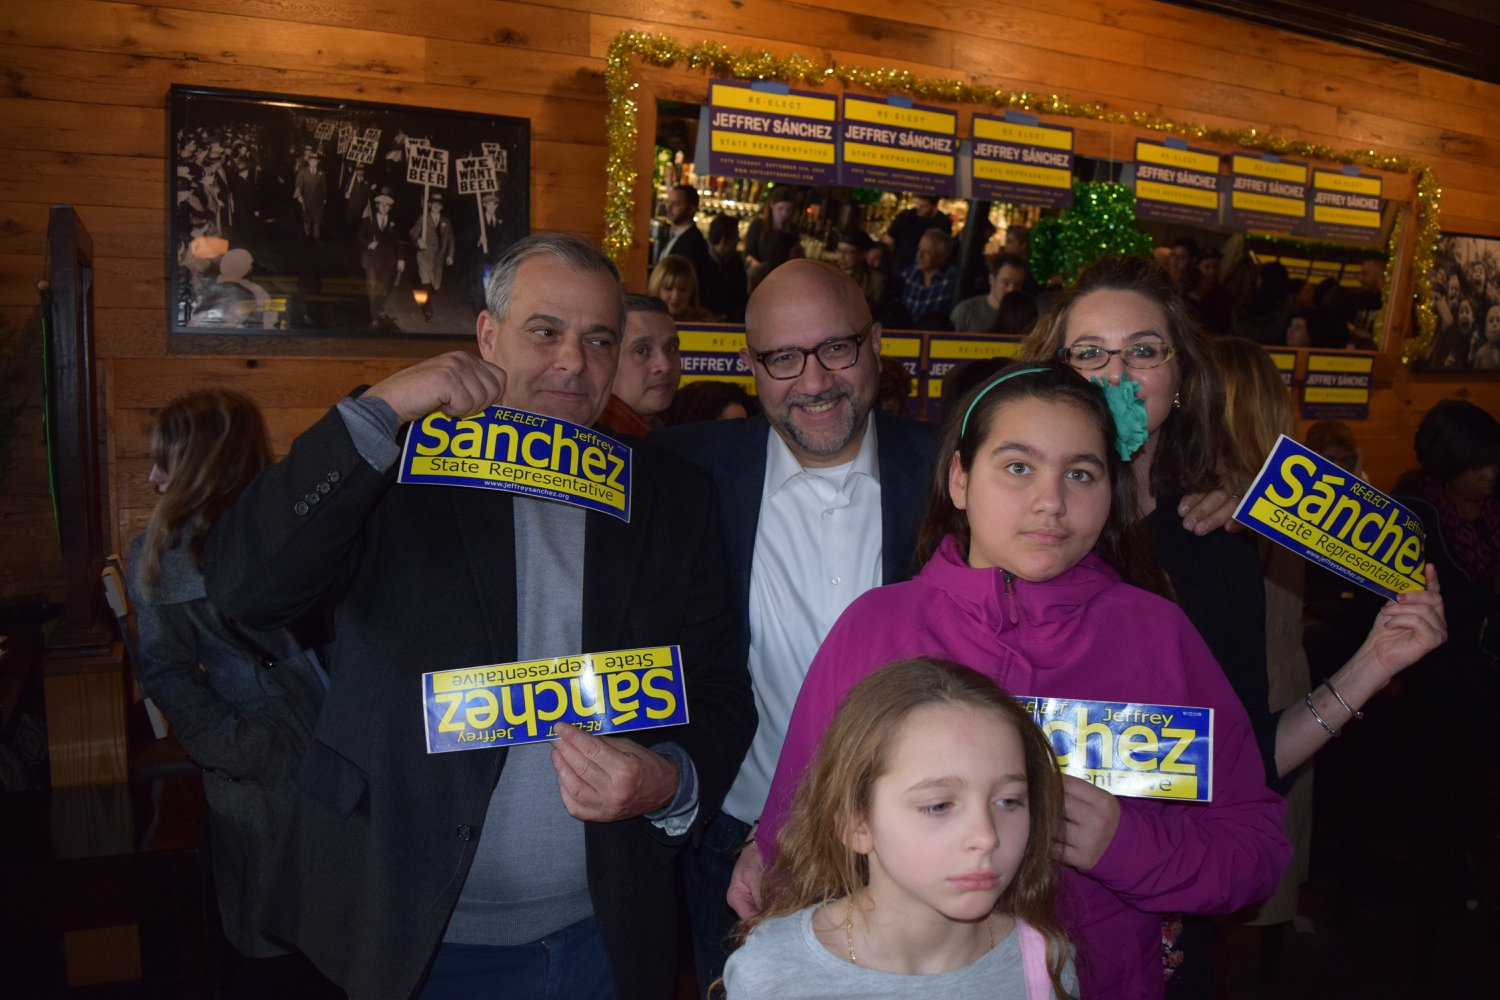 State Representative Jeffrey Sanchez launches campaign for re ...